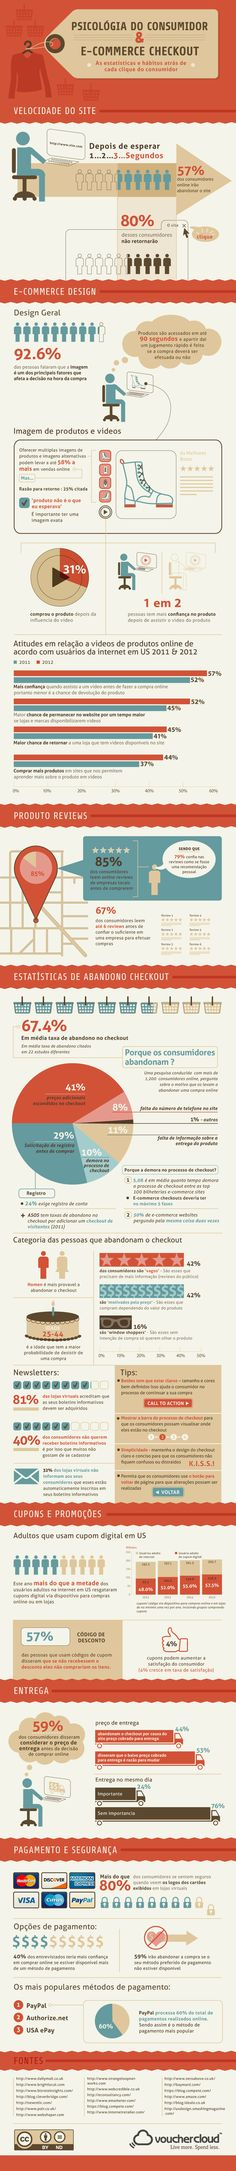 Infográfico sobre o hábito dos consumidores de e-commerce e sua permanência nestes sites #ecommerce #marketingdigital